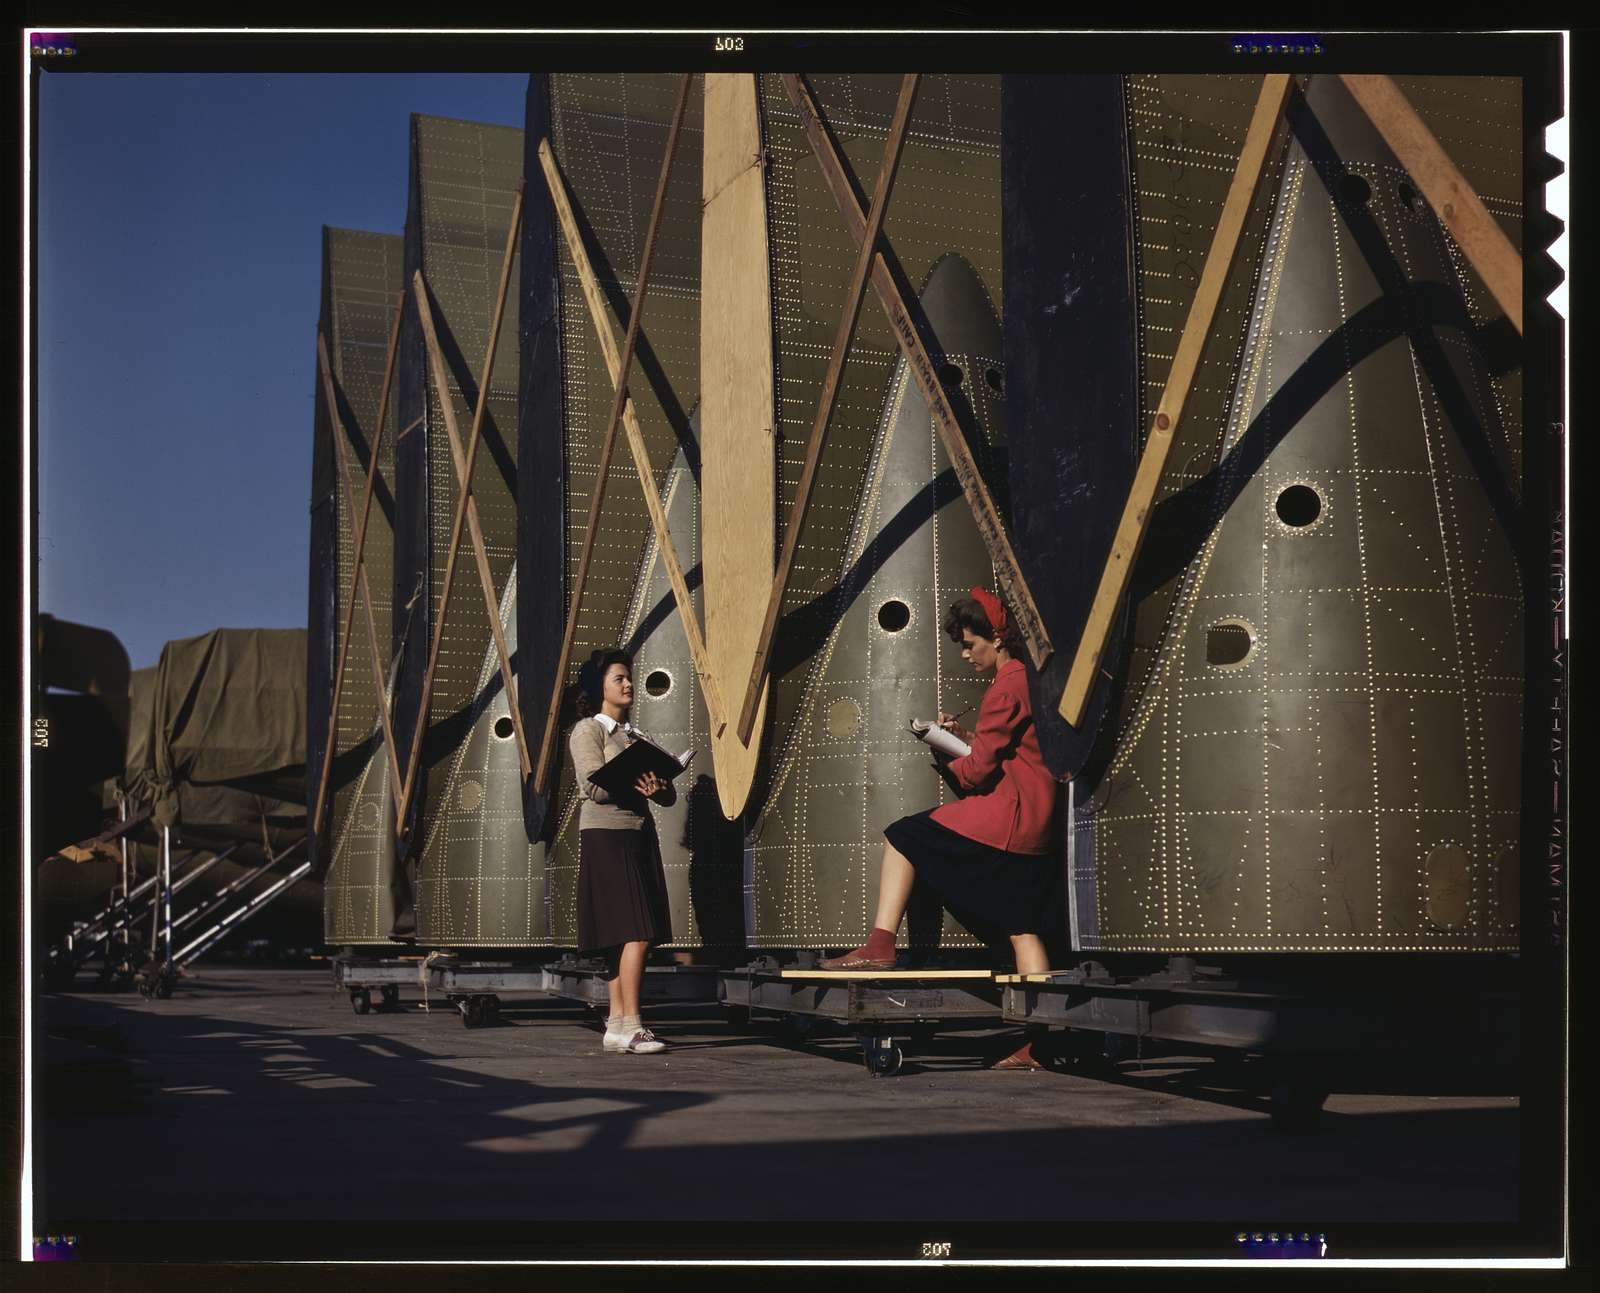 Carefully trained women inspectors check and inspect cargo transport innerwings before they are assembled on the fuselage, Douglas Aircraft Company, Long Beach, Calif